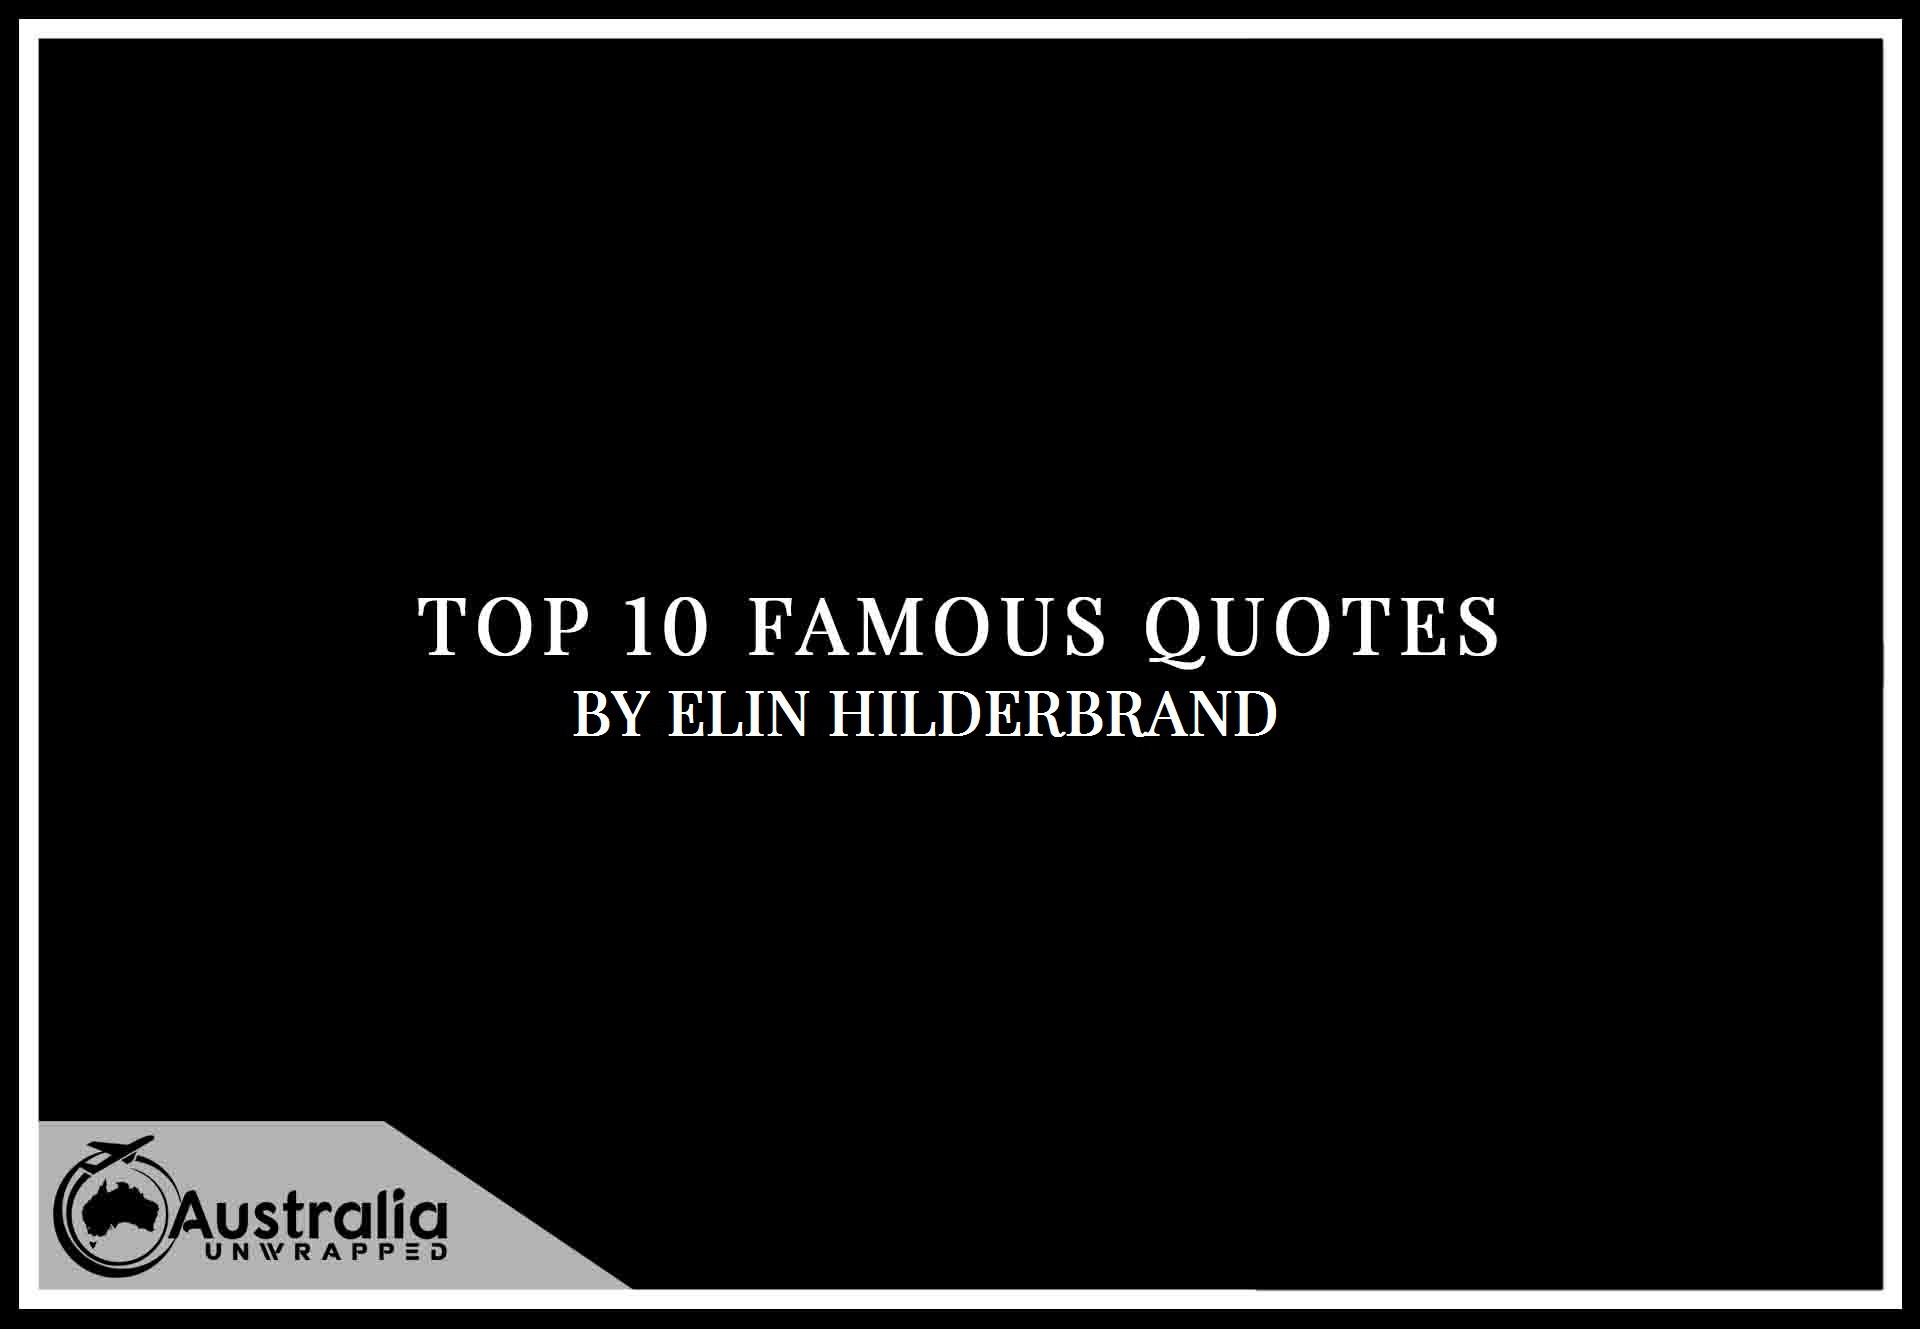 Elin Hilderbrand's Top 10 Popular and Famous Quotes